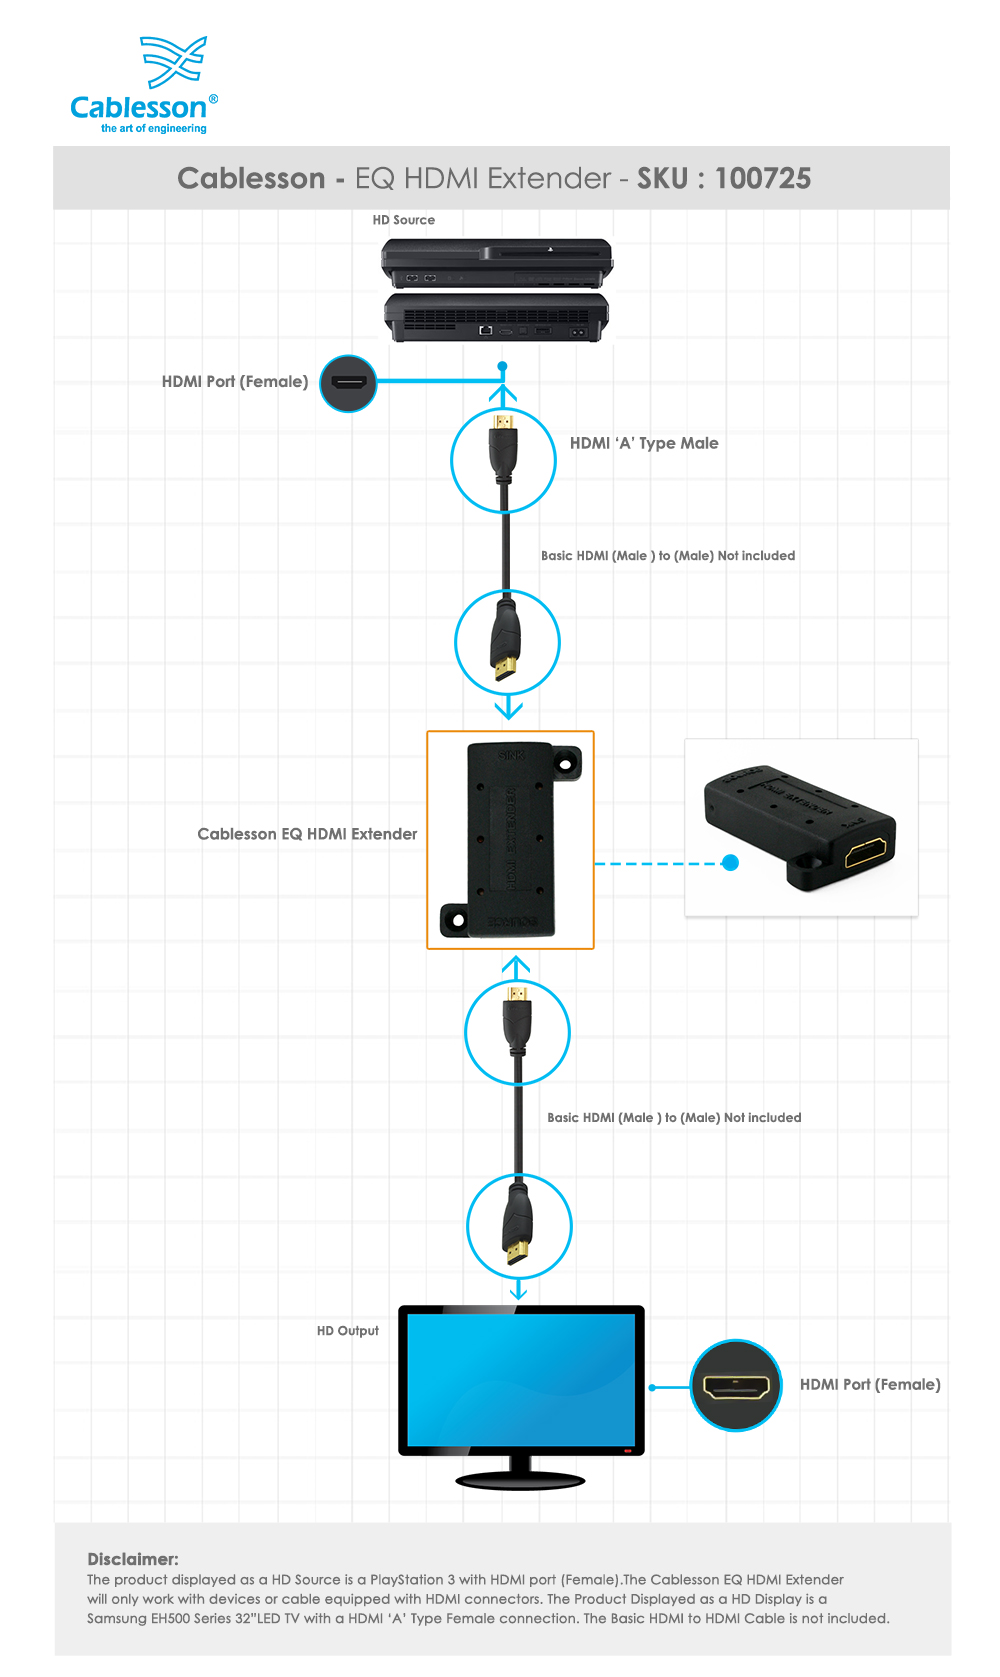 Eq Hdmi Extender Cablesson Wiring Diagram 0 To 36 Metres Over Cable 26 28 Awg High Quality Cables Recommended